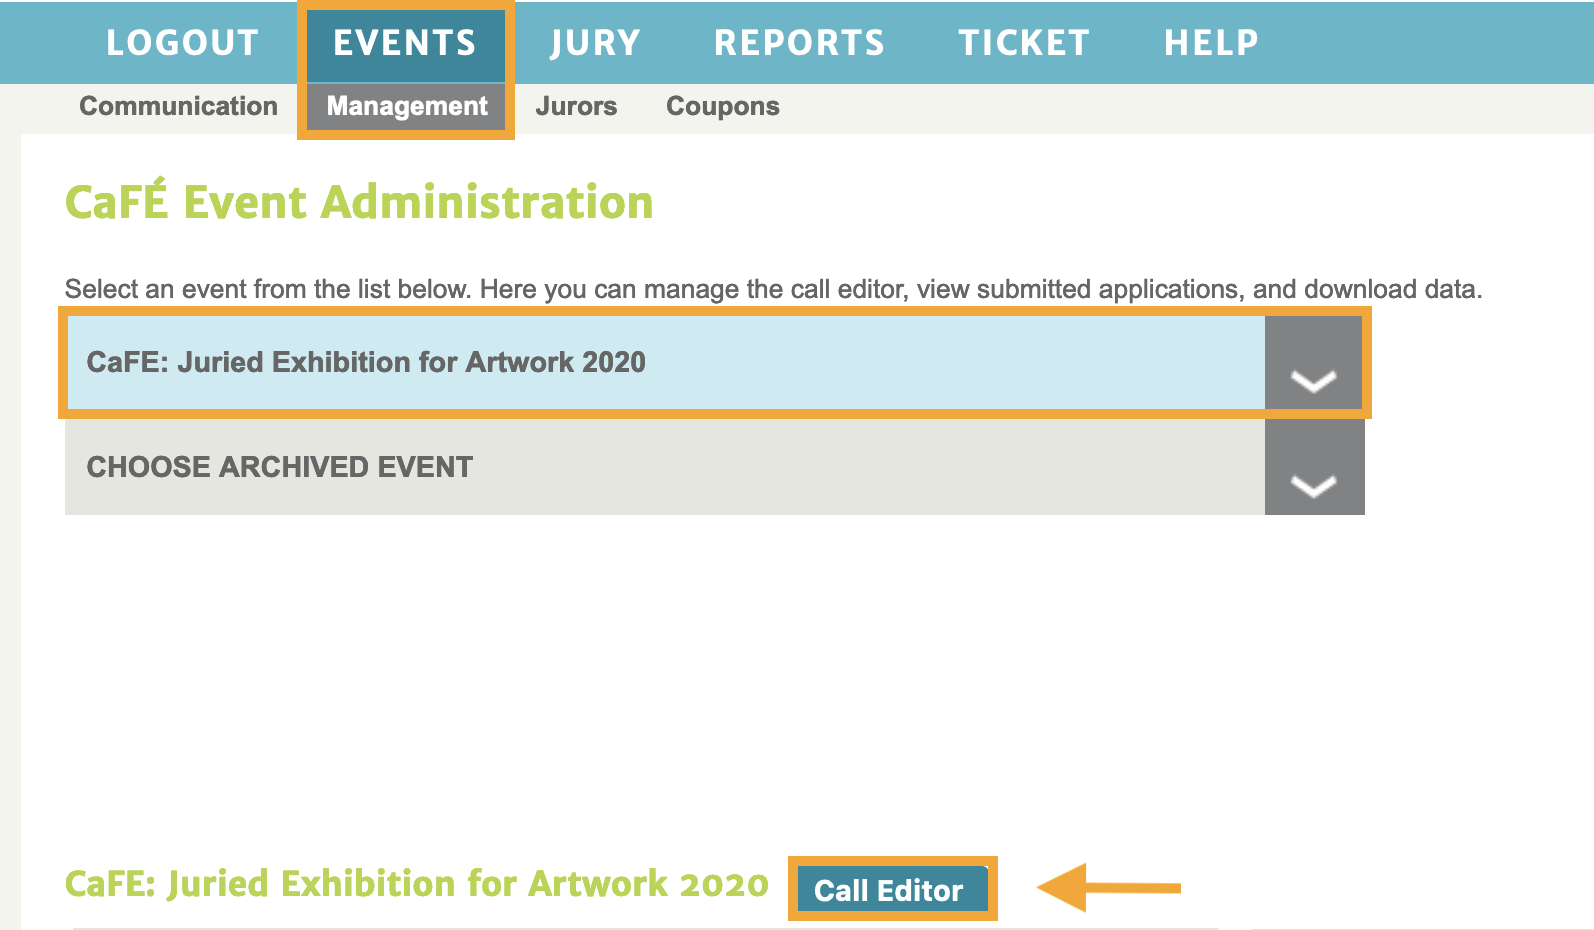 Screenshot of the Event Management landing page with rectangles highlighting the selection of the current event and Call Editor.